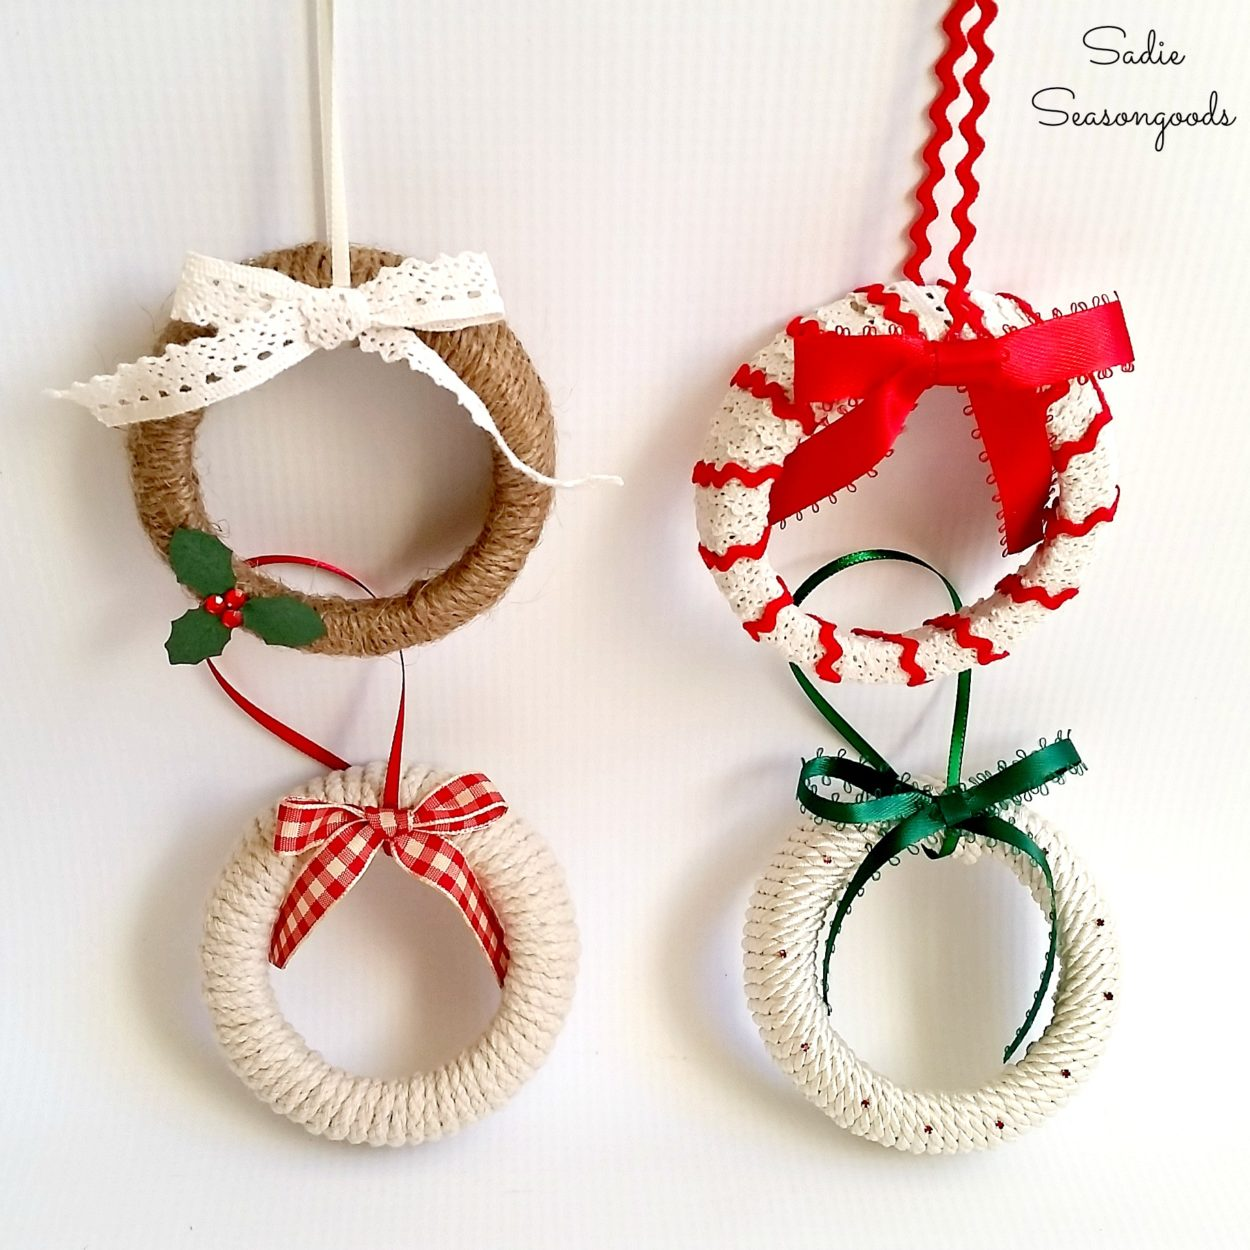 upcycle-ornaments-2016-mason-jar